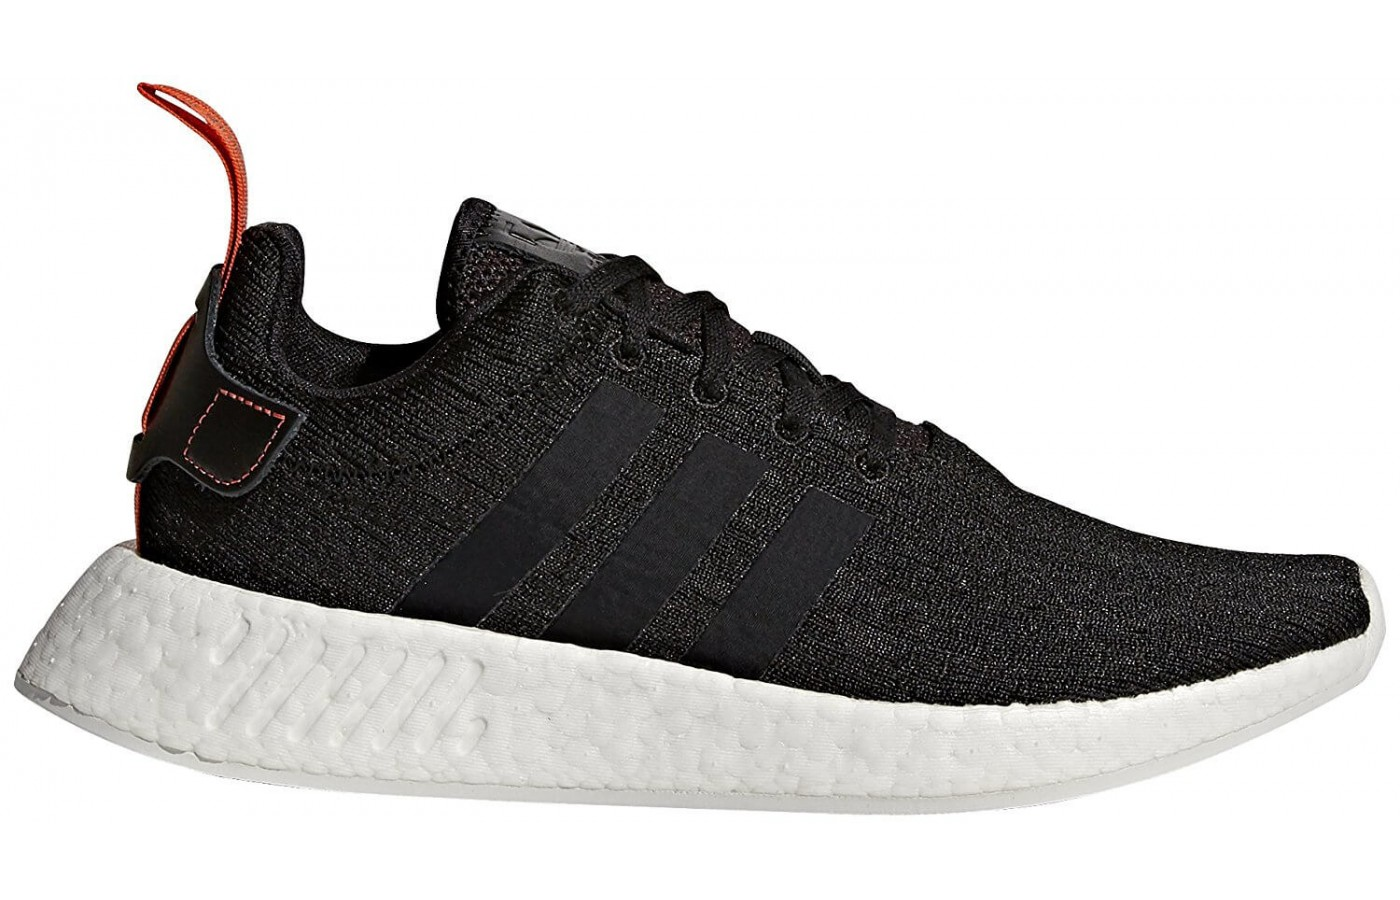 The Adidas NMD R2 features a Boost midsole